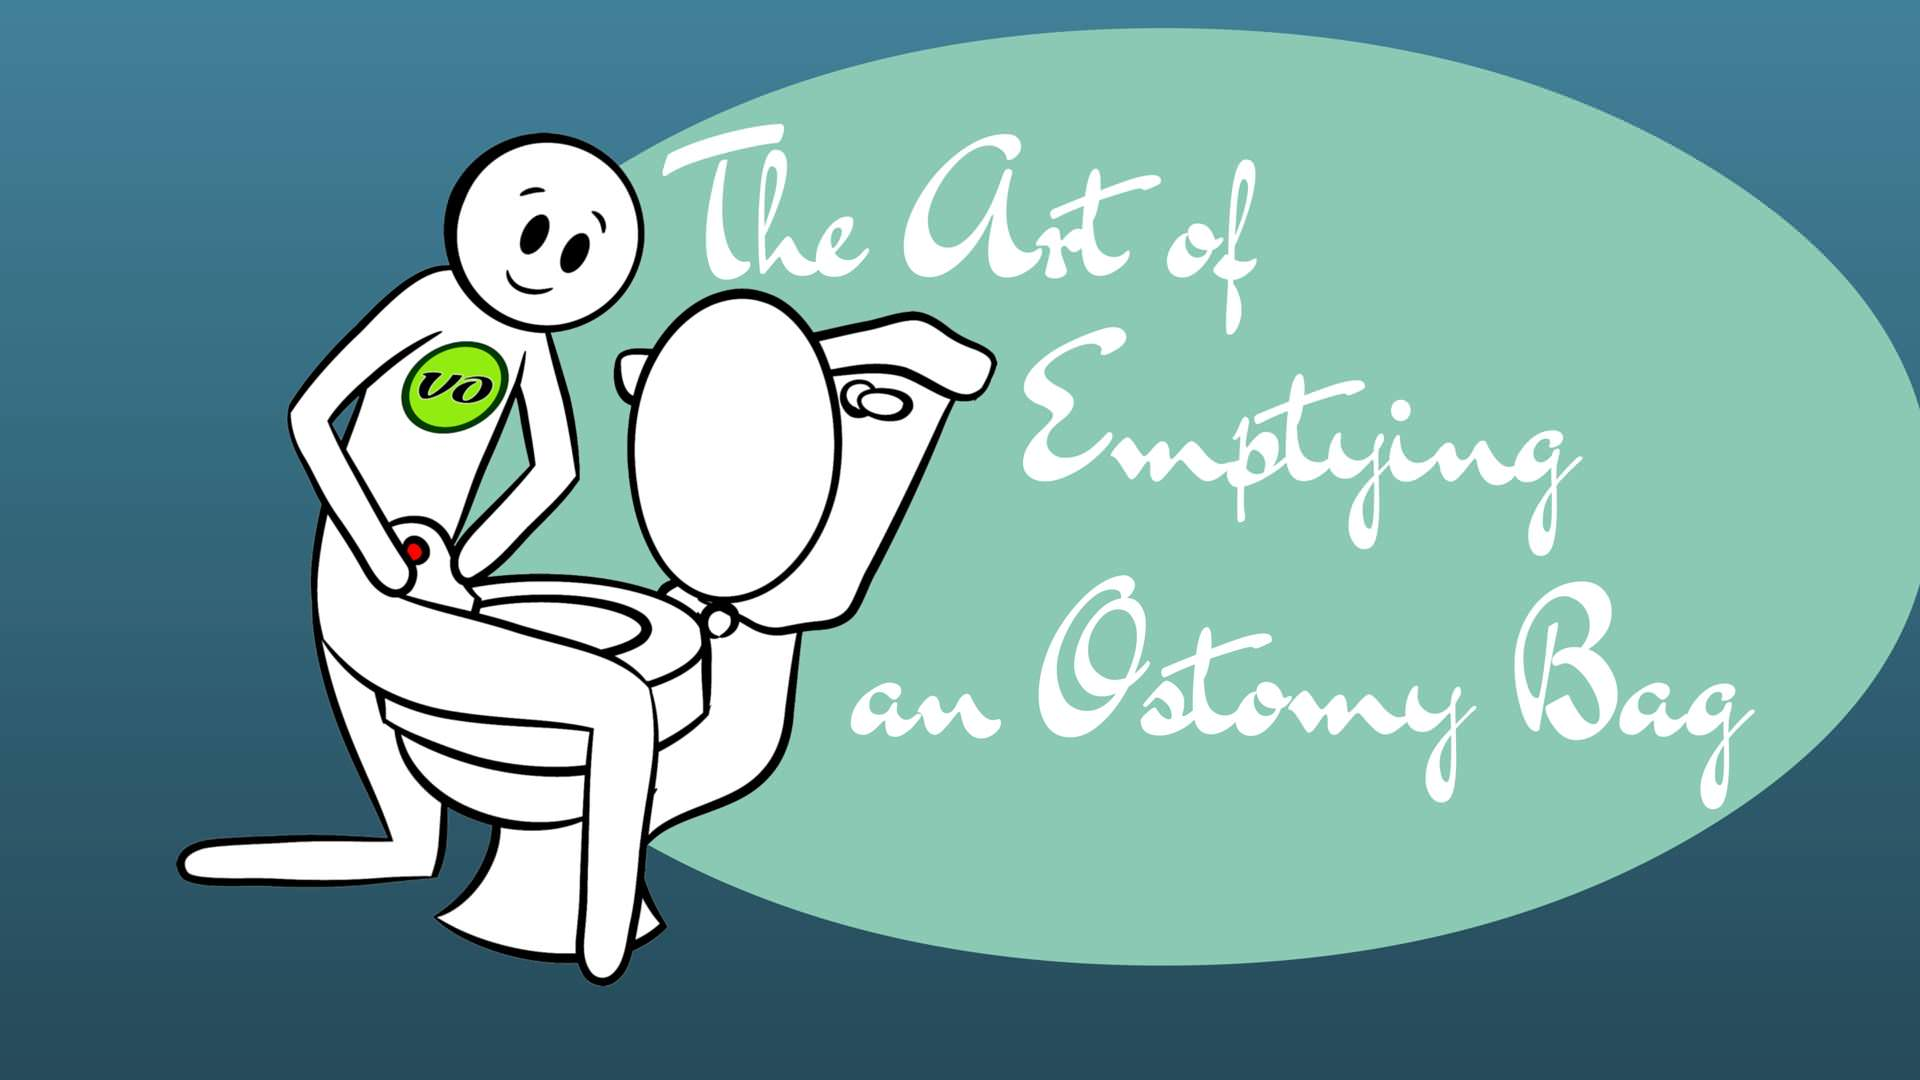 The Art of Emptying an Ostomy Bag